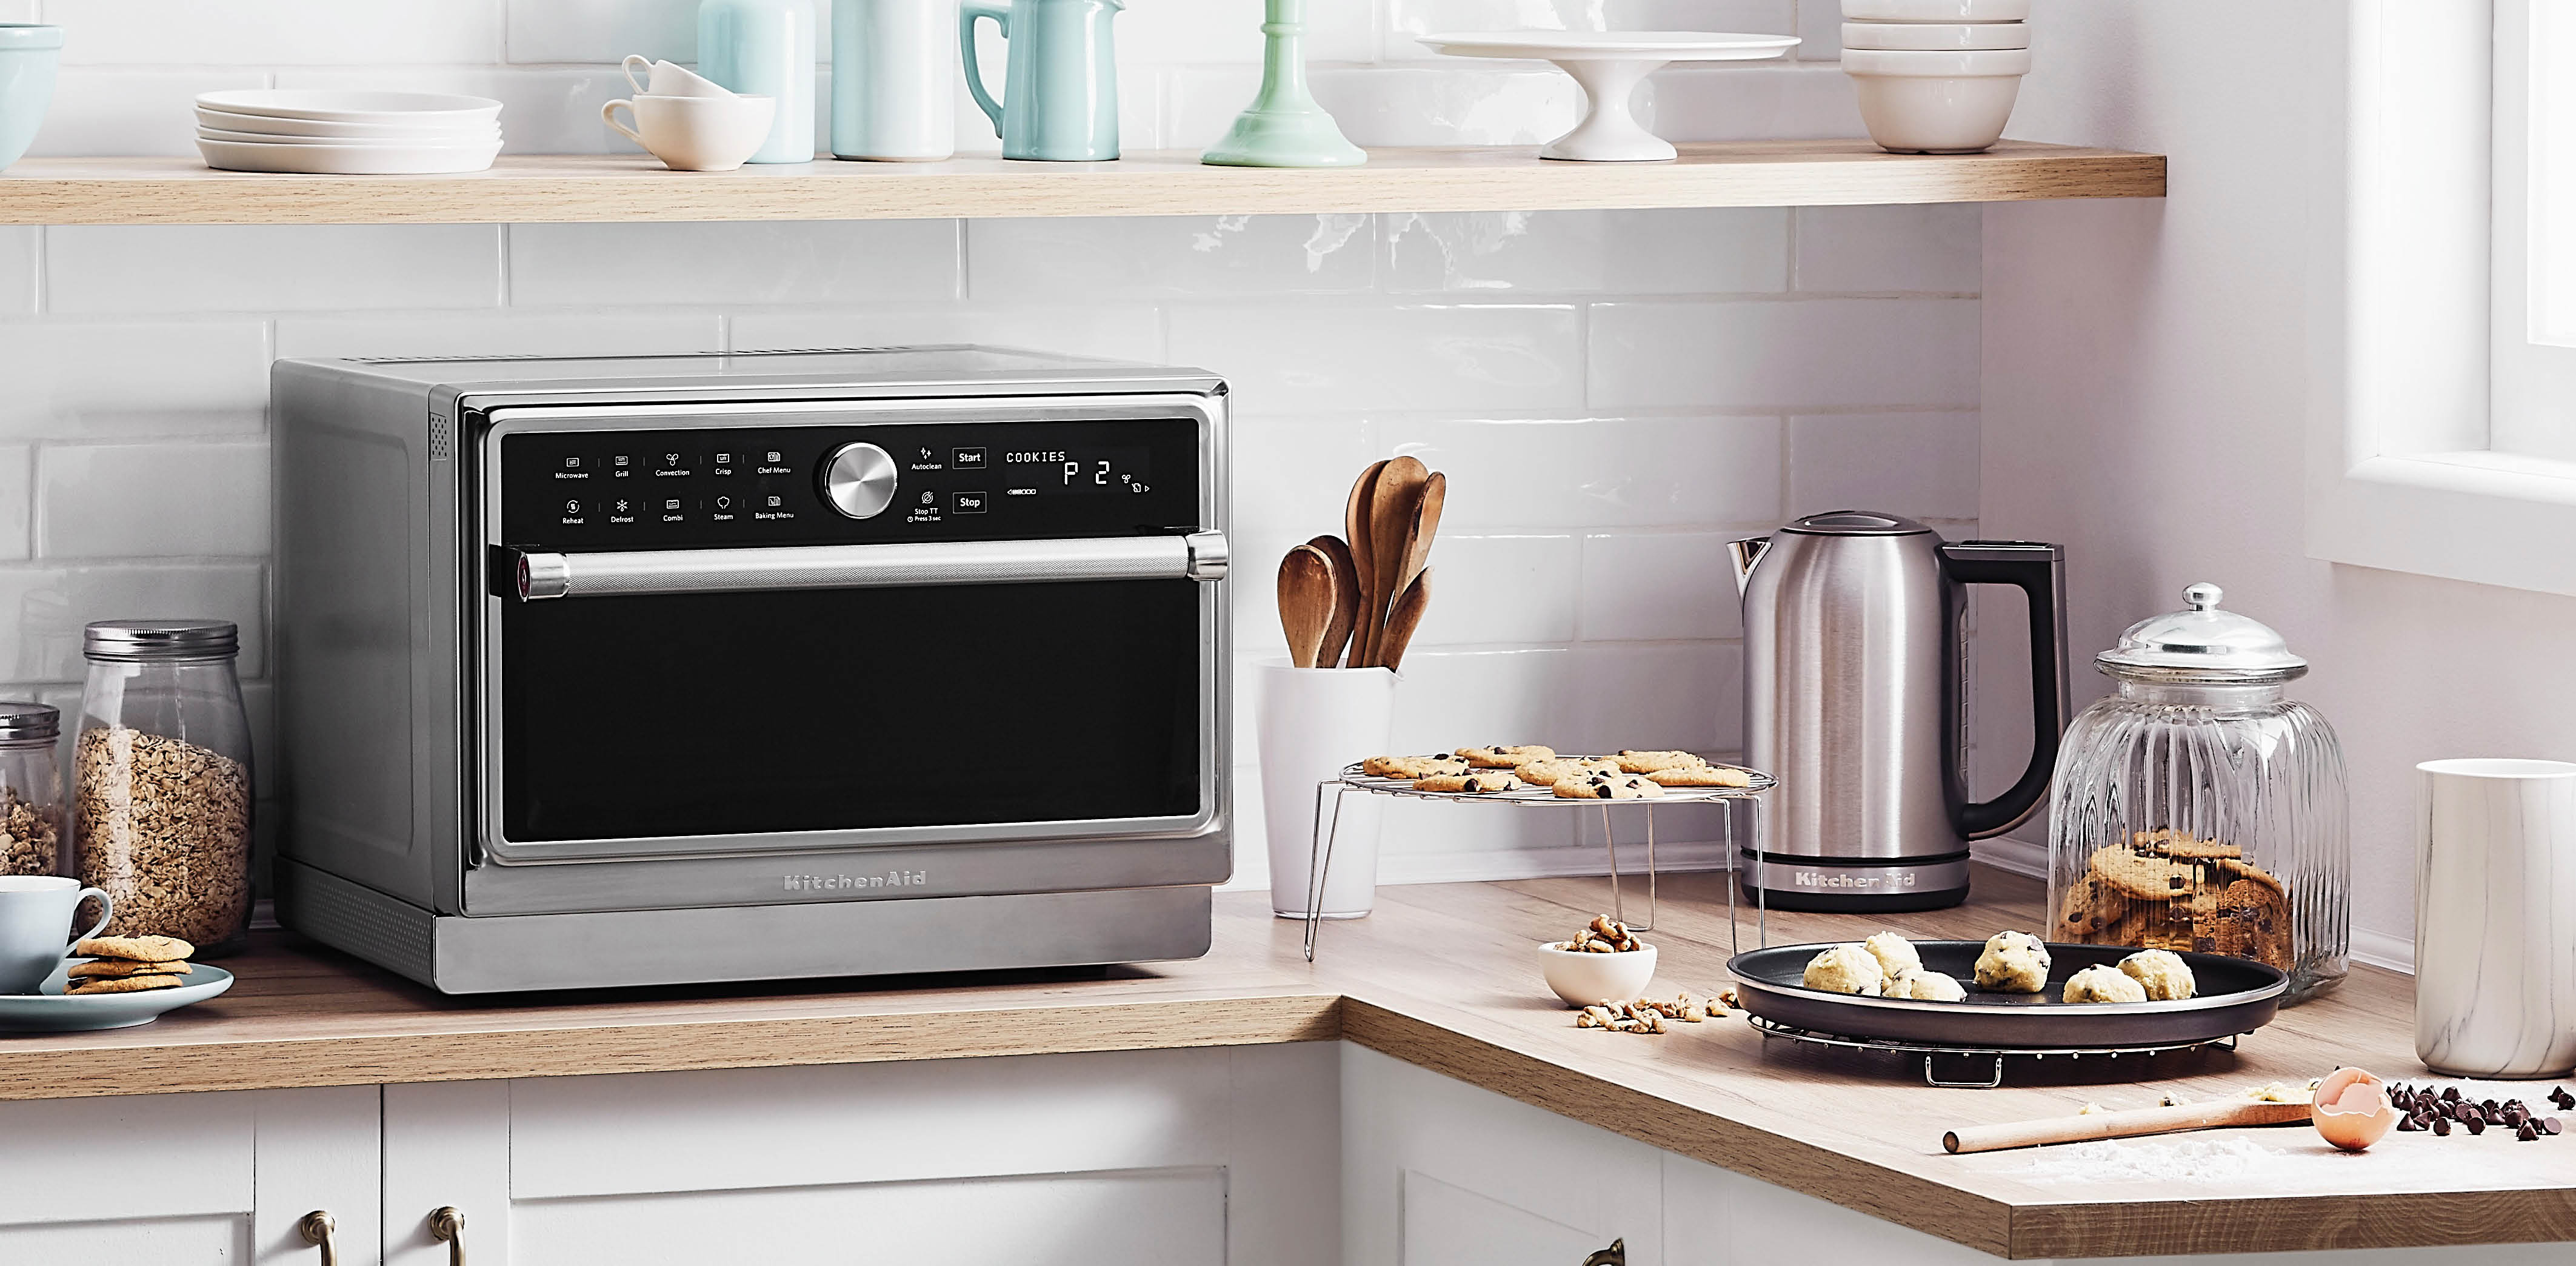 KitchenAid Bake Assist microwave Oven